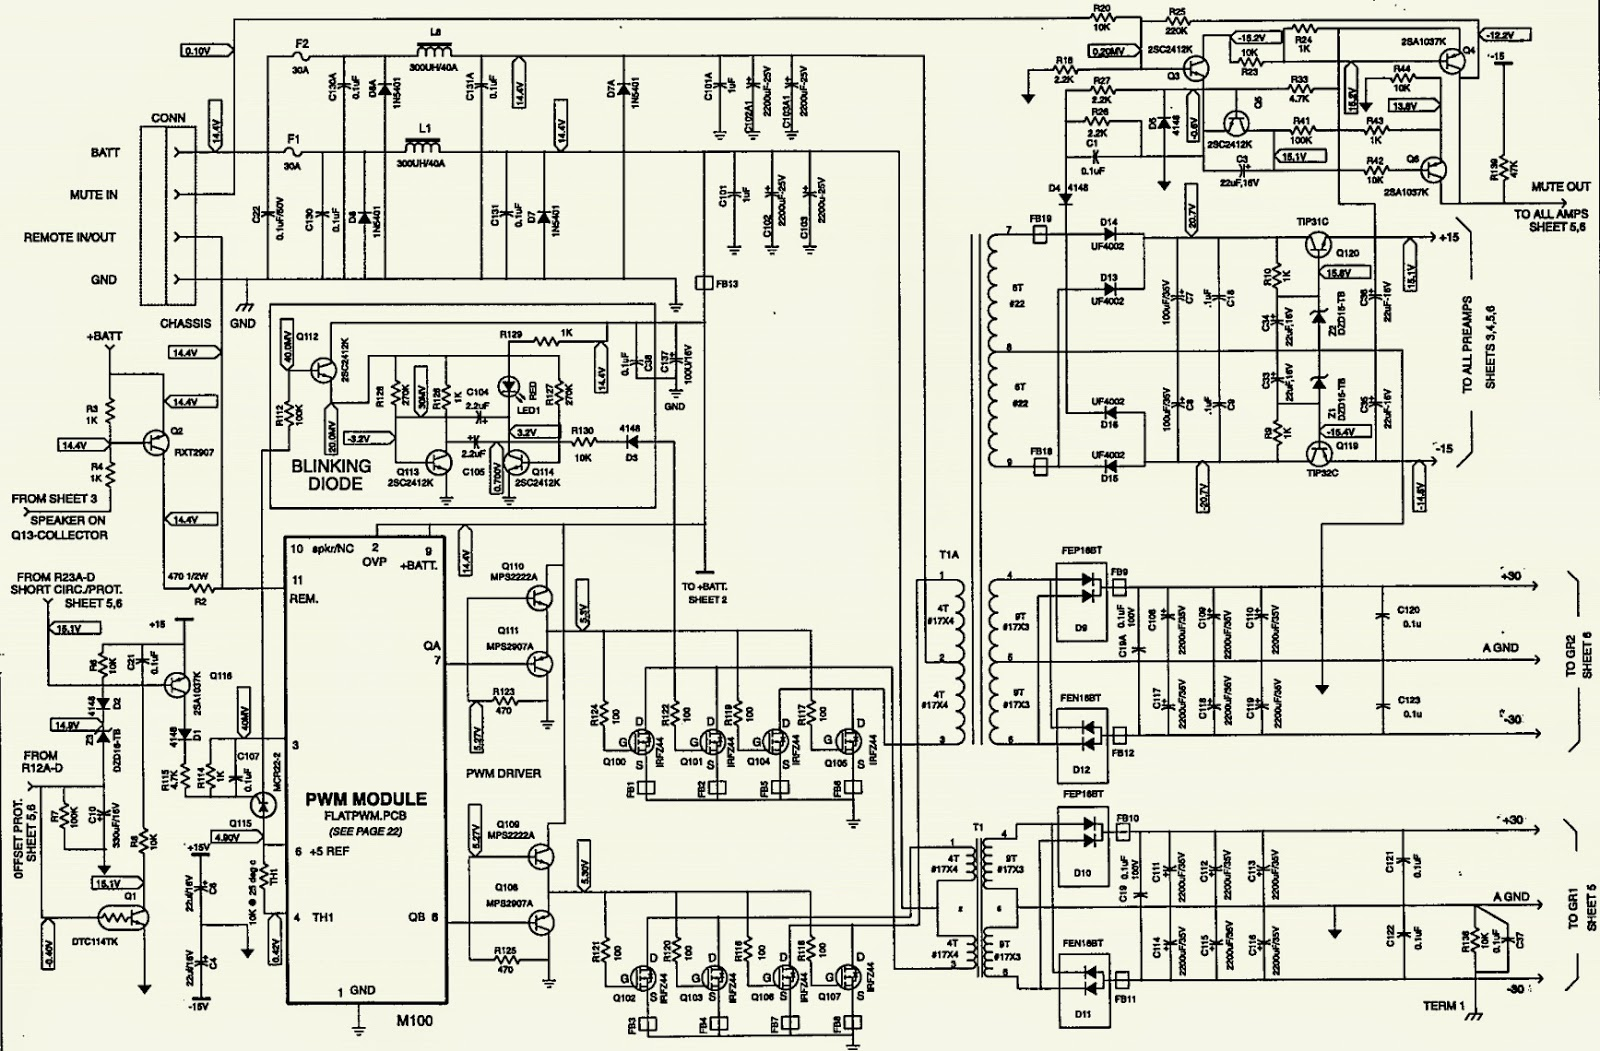 Toshiba Car Stereo Wiring Diagram - DIY Wiring Diagrams •